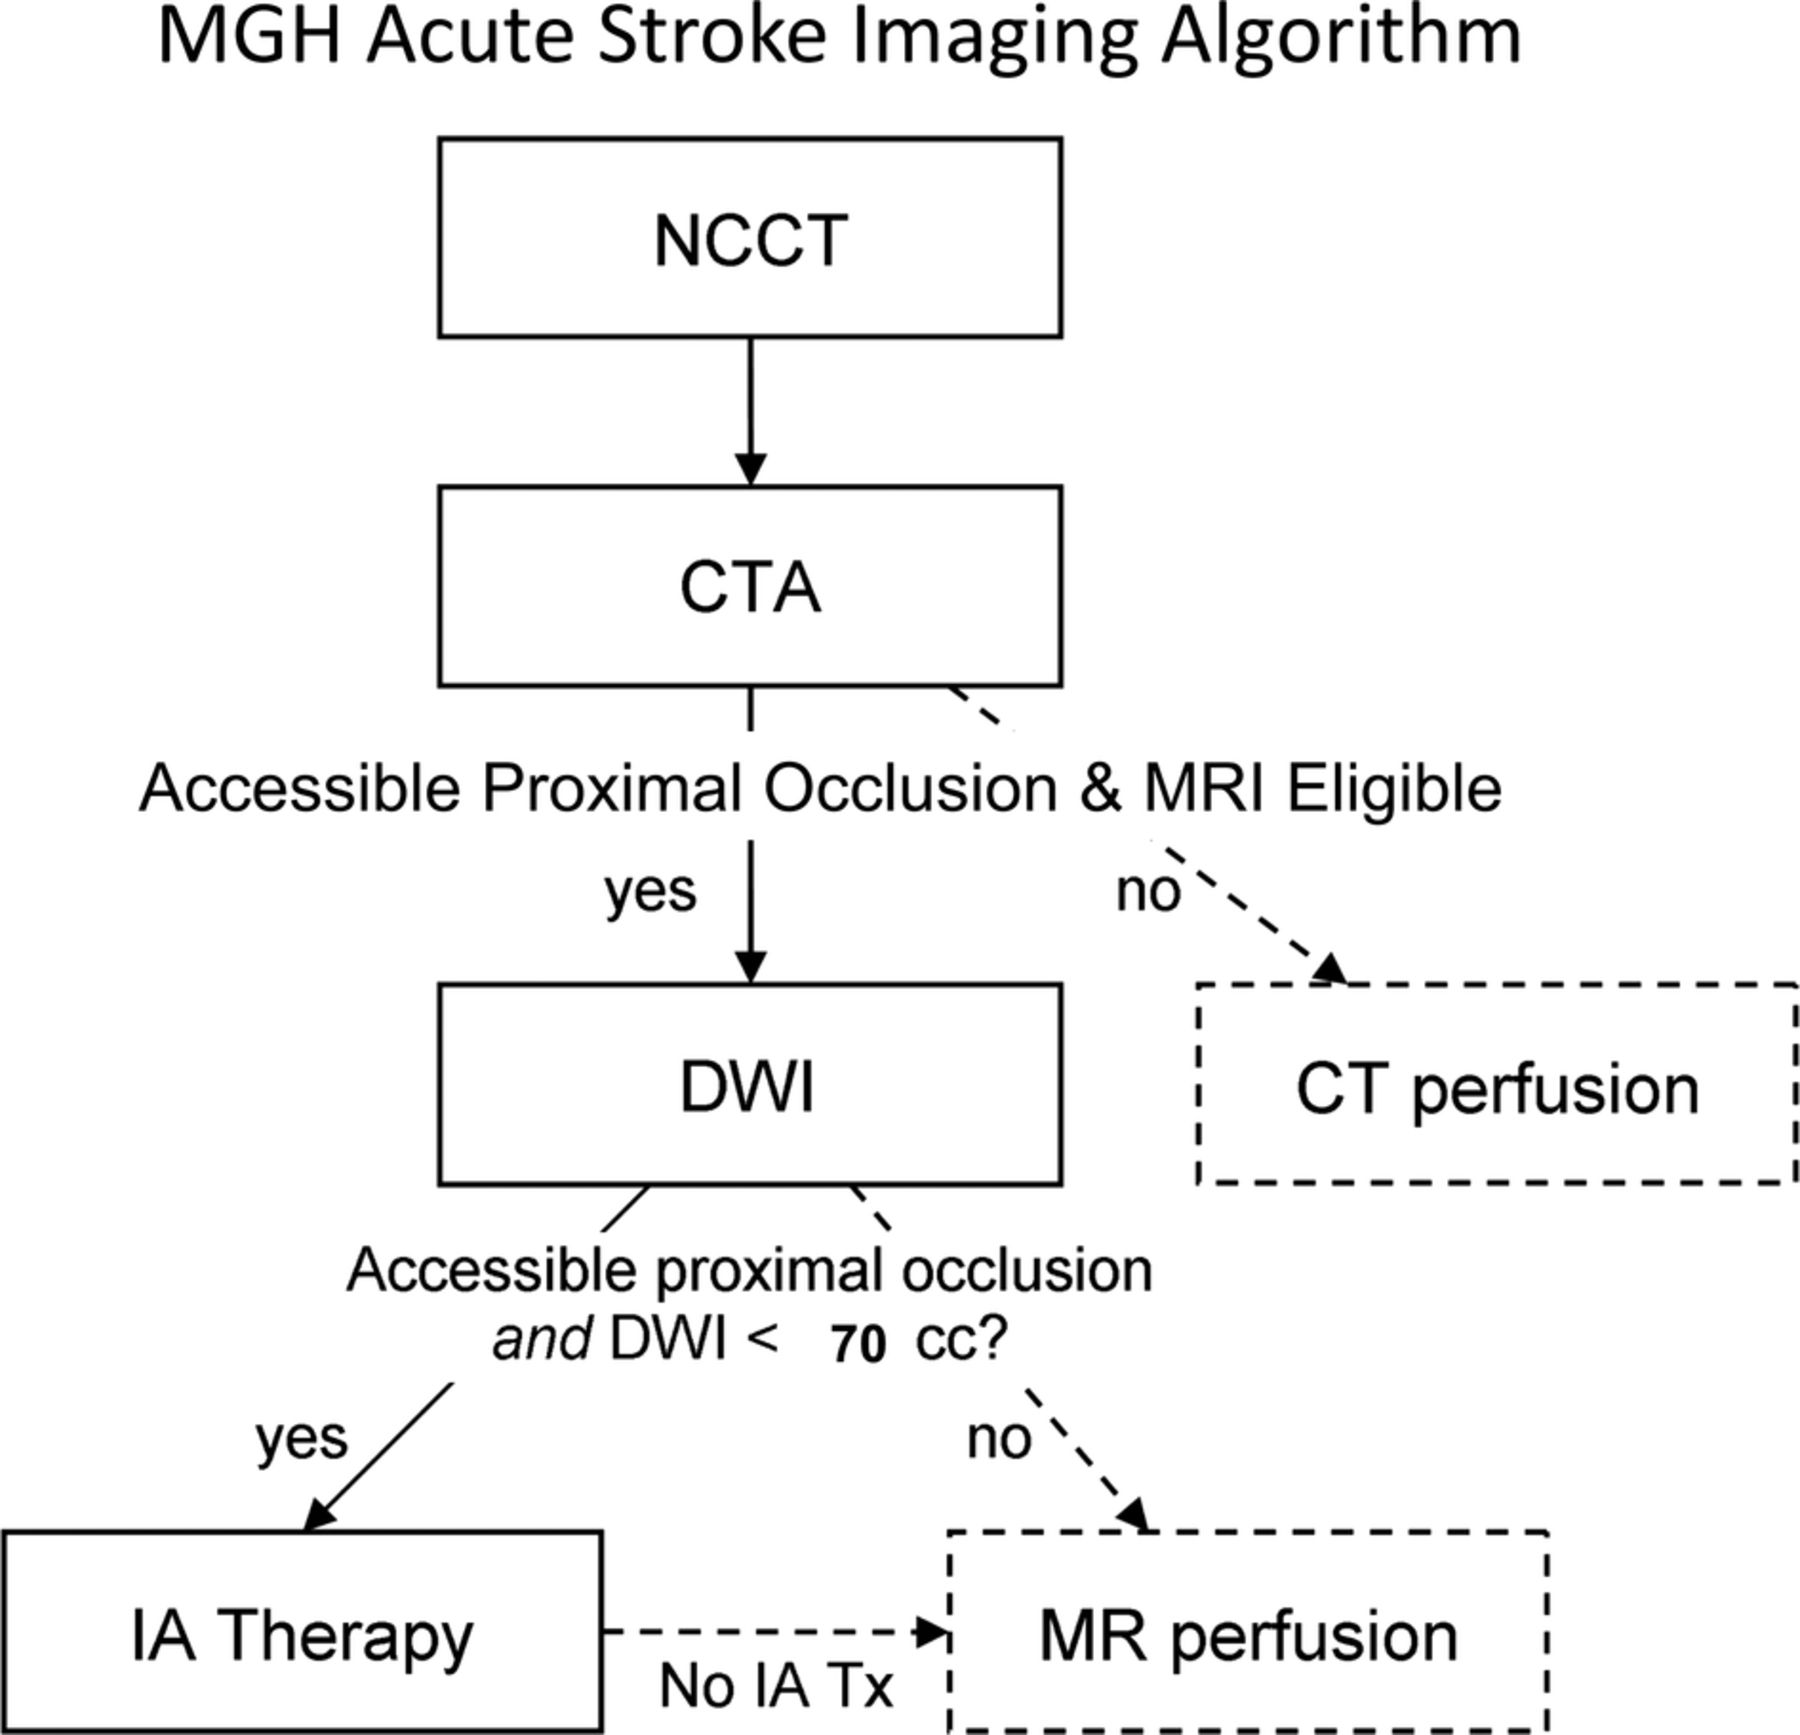 The Massachusetts General Hospital acute stroke imaging algorithm ...